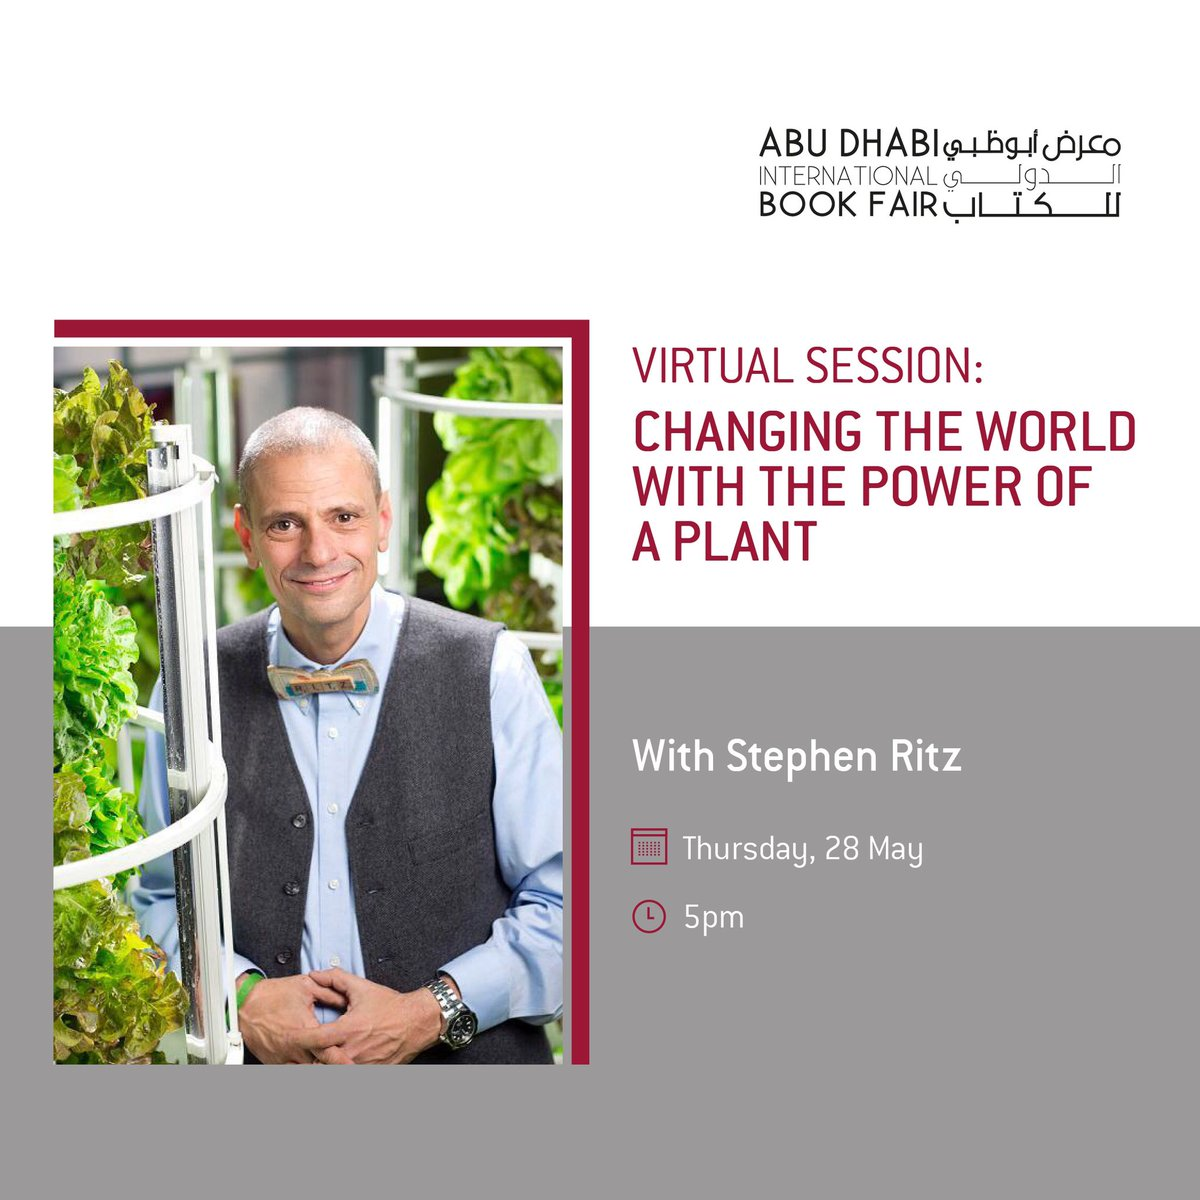 Guess who is counting down asks @StephenRitz ??? 🙋🏻‍♂️🤠🤗👍✔️✊️